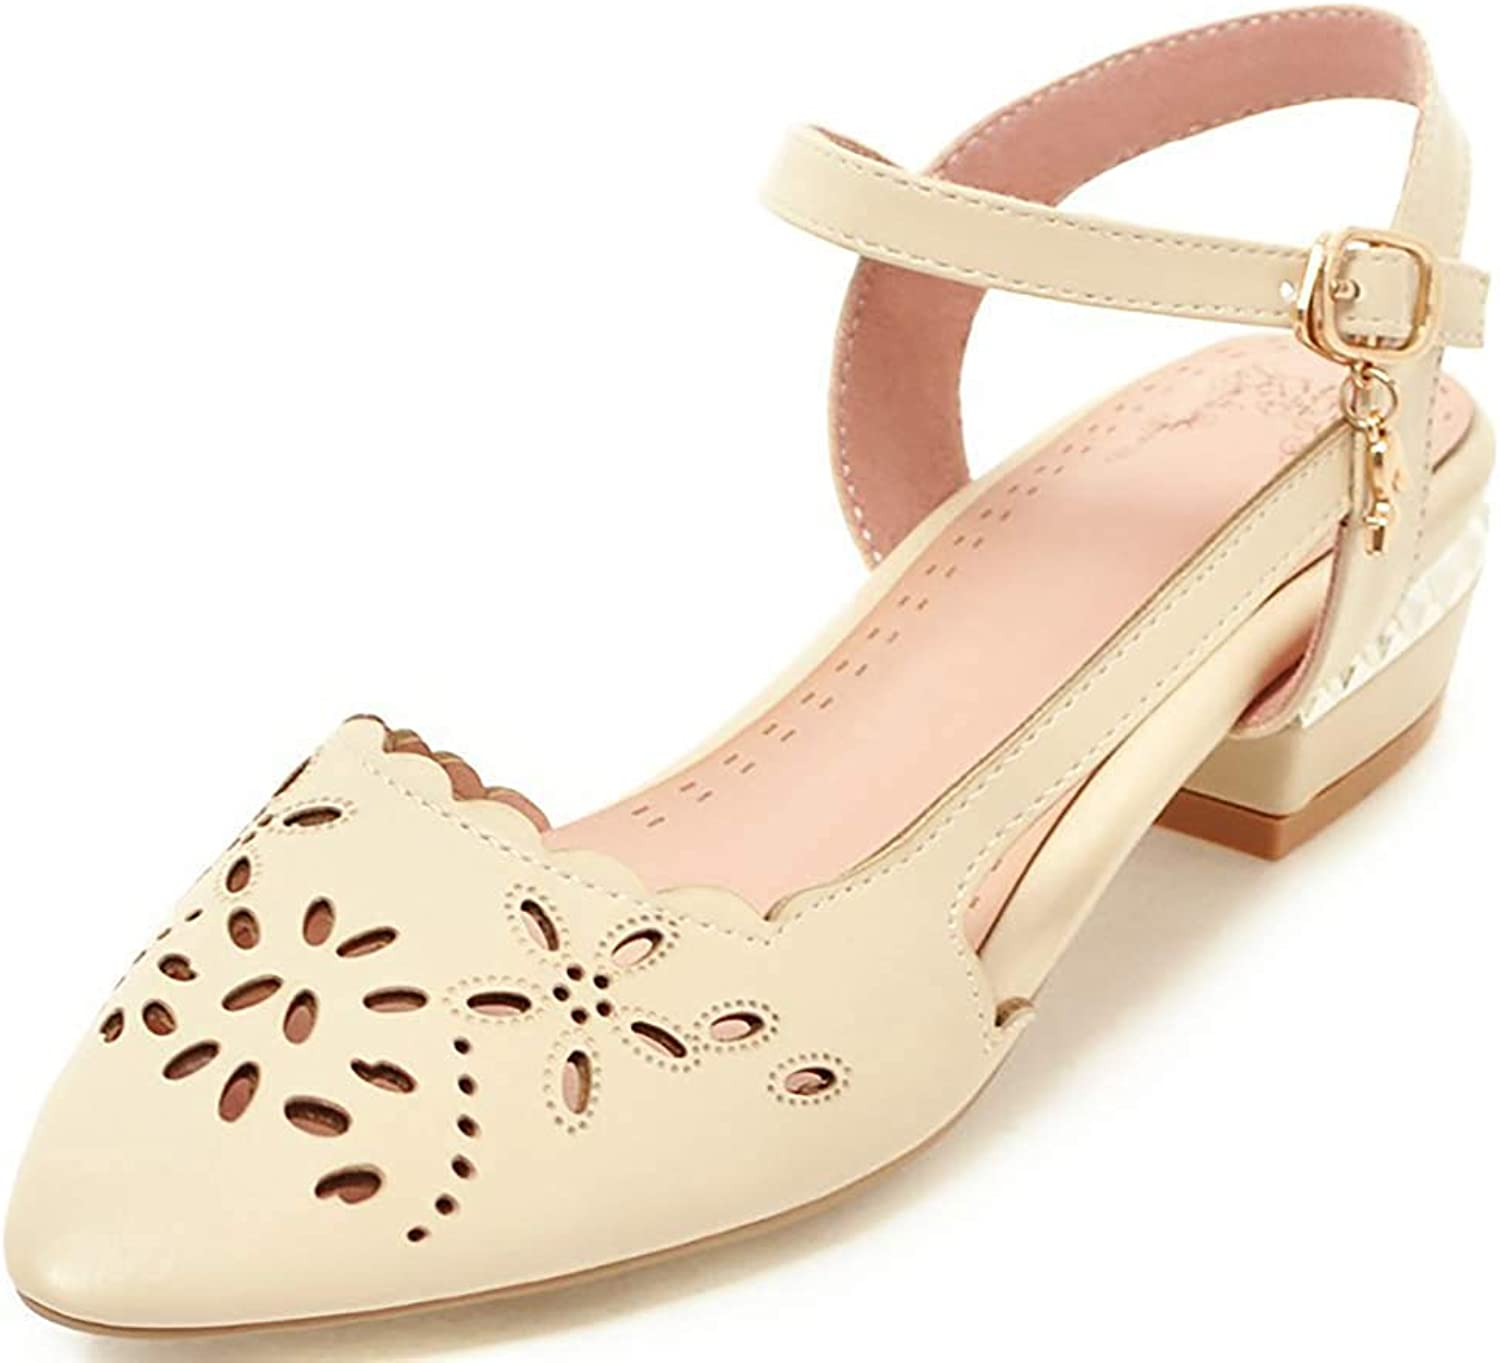 Wallhewb Women's Elegant Cut Out Pointed Toe Ankle Strap Low Chunky Heel Pumps Sandals Evening Dress Party Open Back Leather No Grinding Feet Ankle Strap Low Top Fashion Pink 8 M US Pumps Sandals